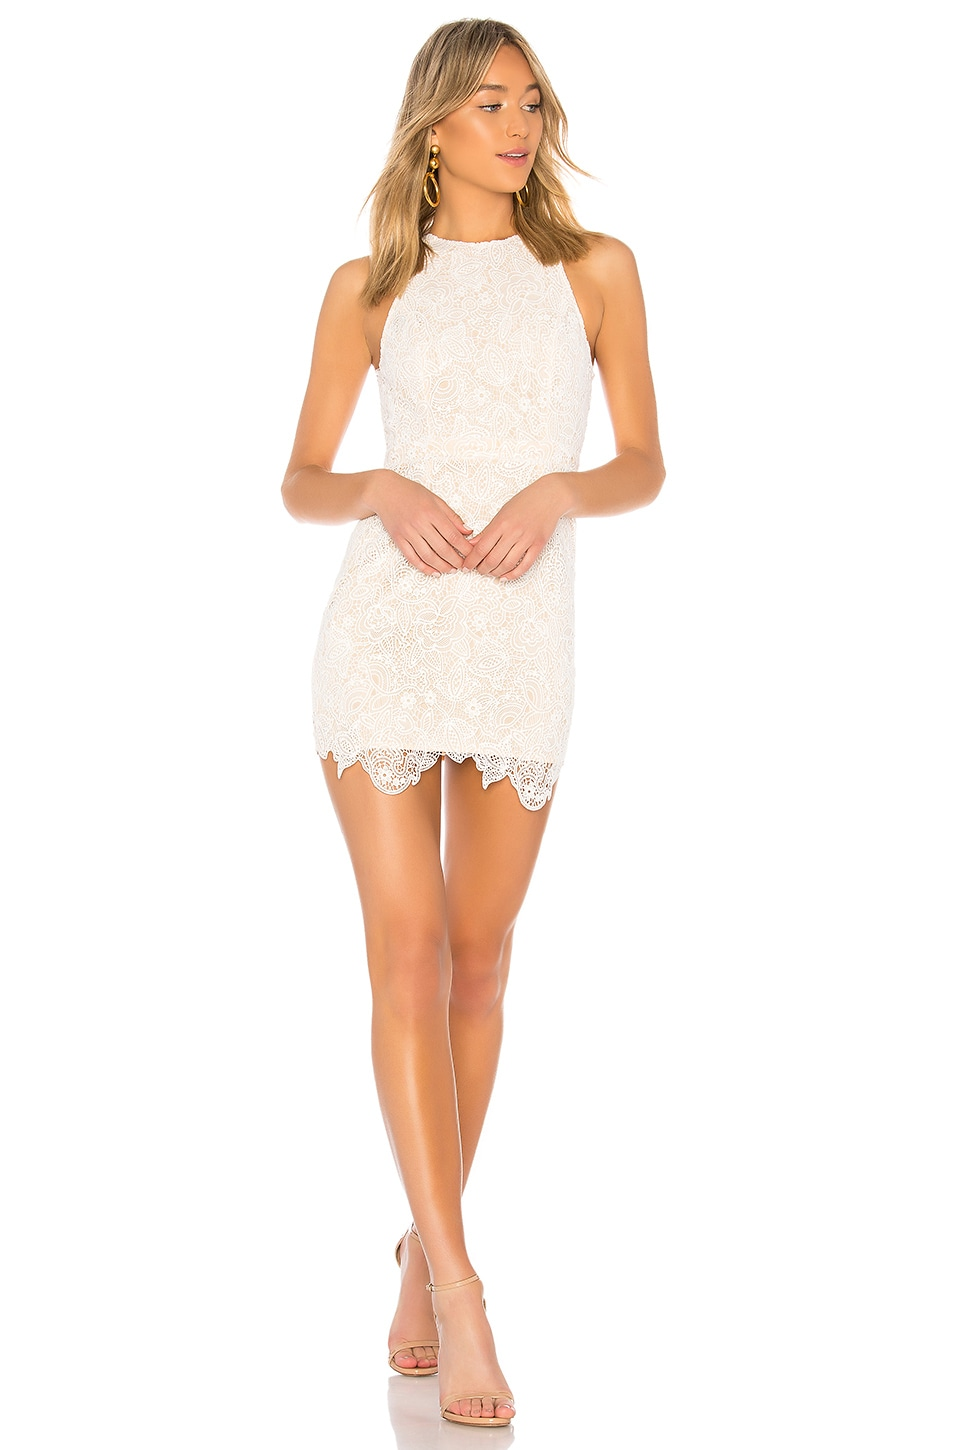 Patty High Neck Crochet Dress             superdown                                                                                                       CA$ 105.38 19